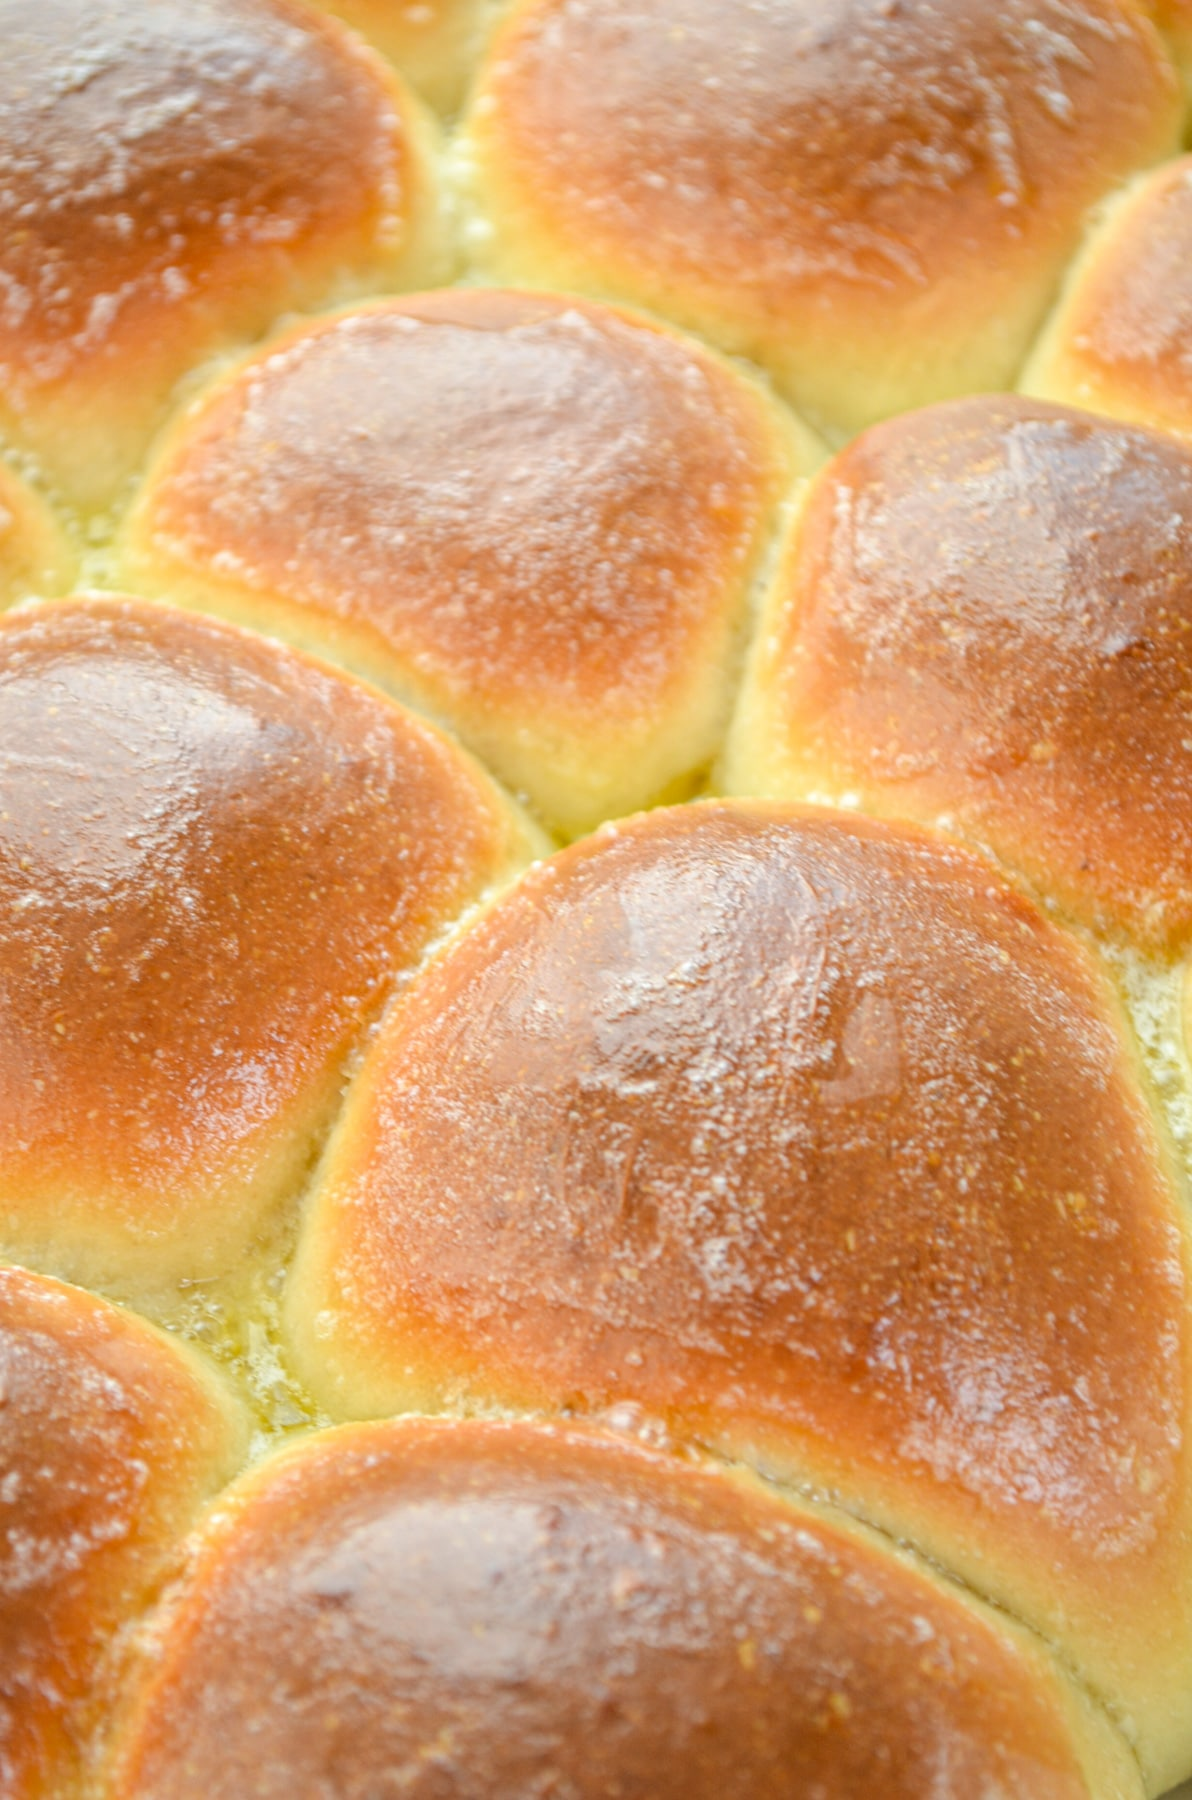 A close up of dinner rolls in a baking dish.